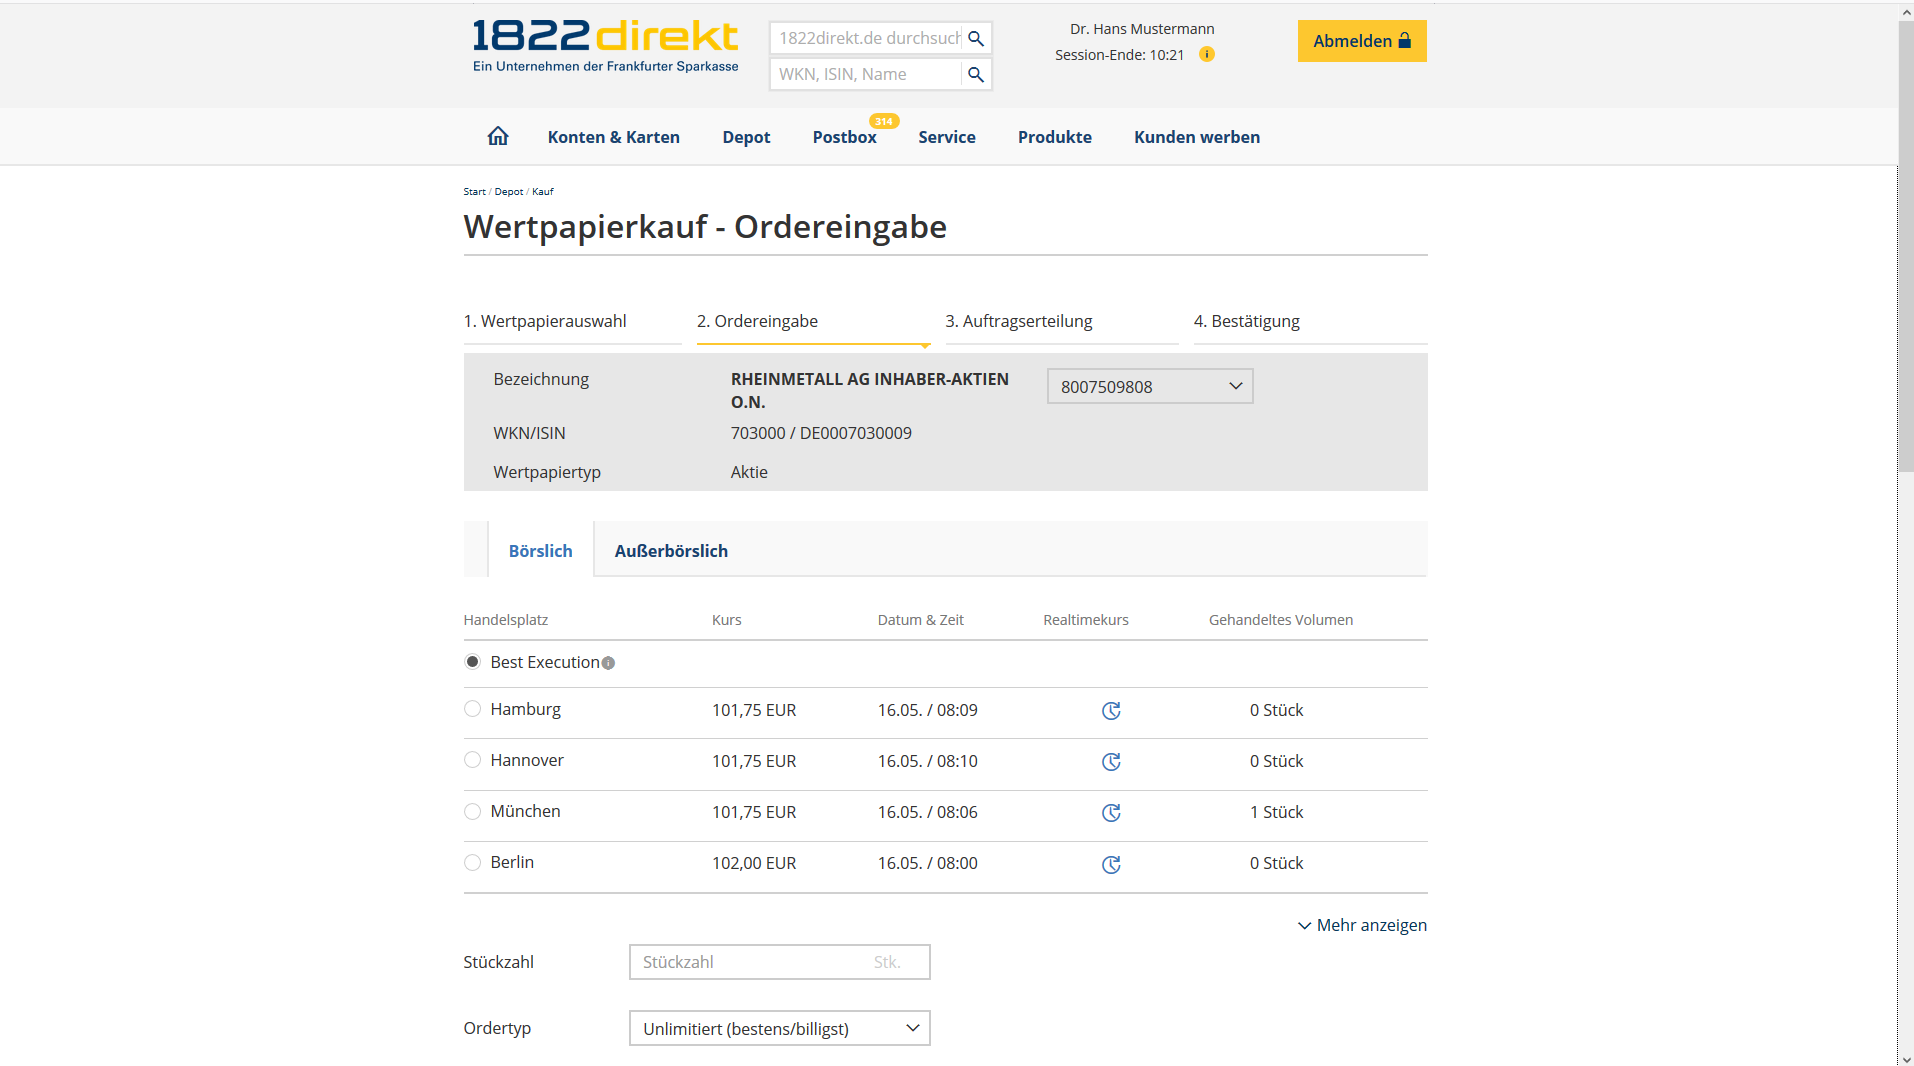 1822direkt Depot Screenshot